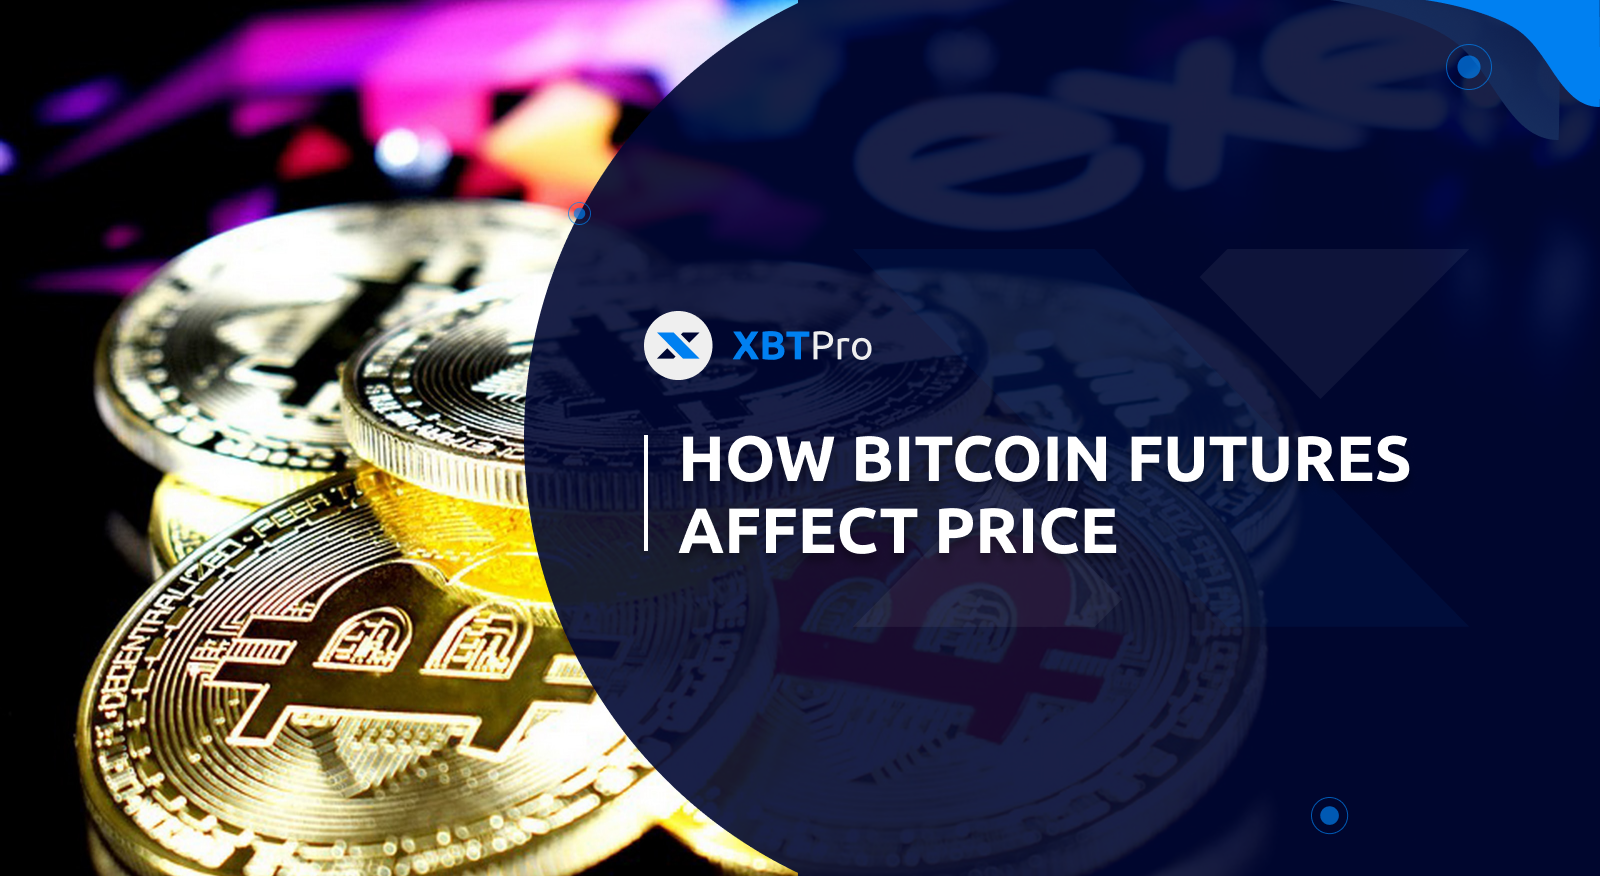 How Bitcoin Futures Affect Price About One Year Ago Bitcoin Futures By Xbtpro Medium